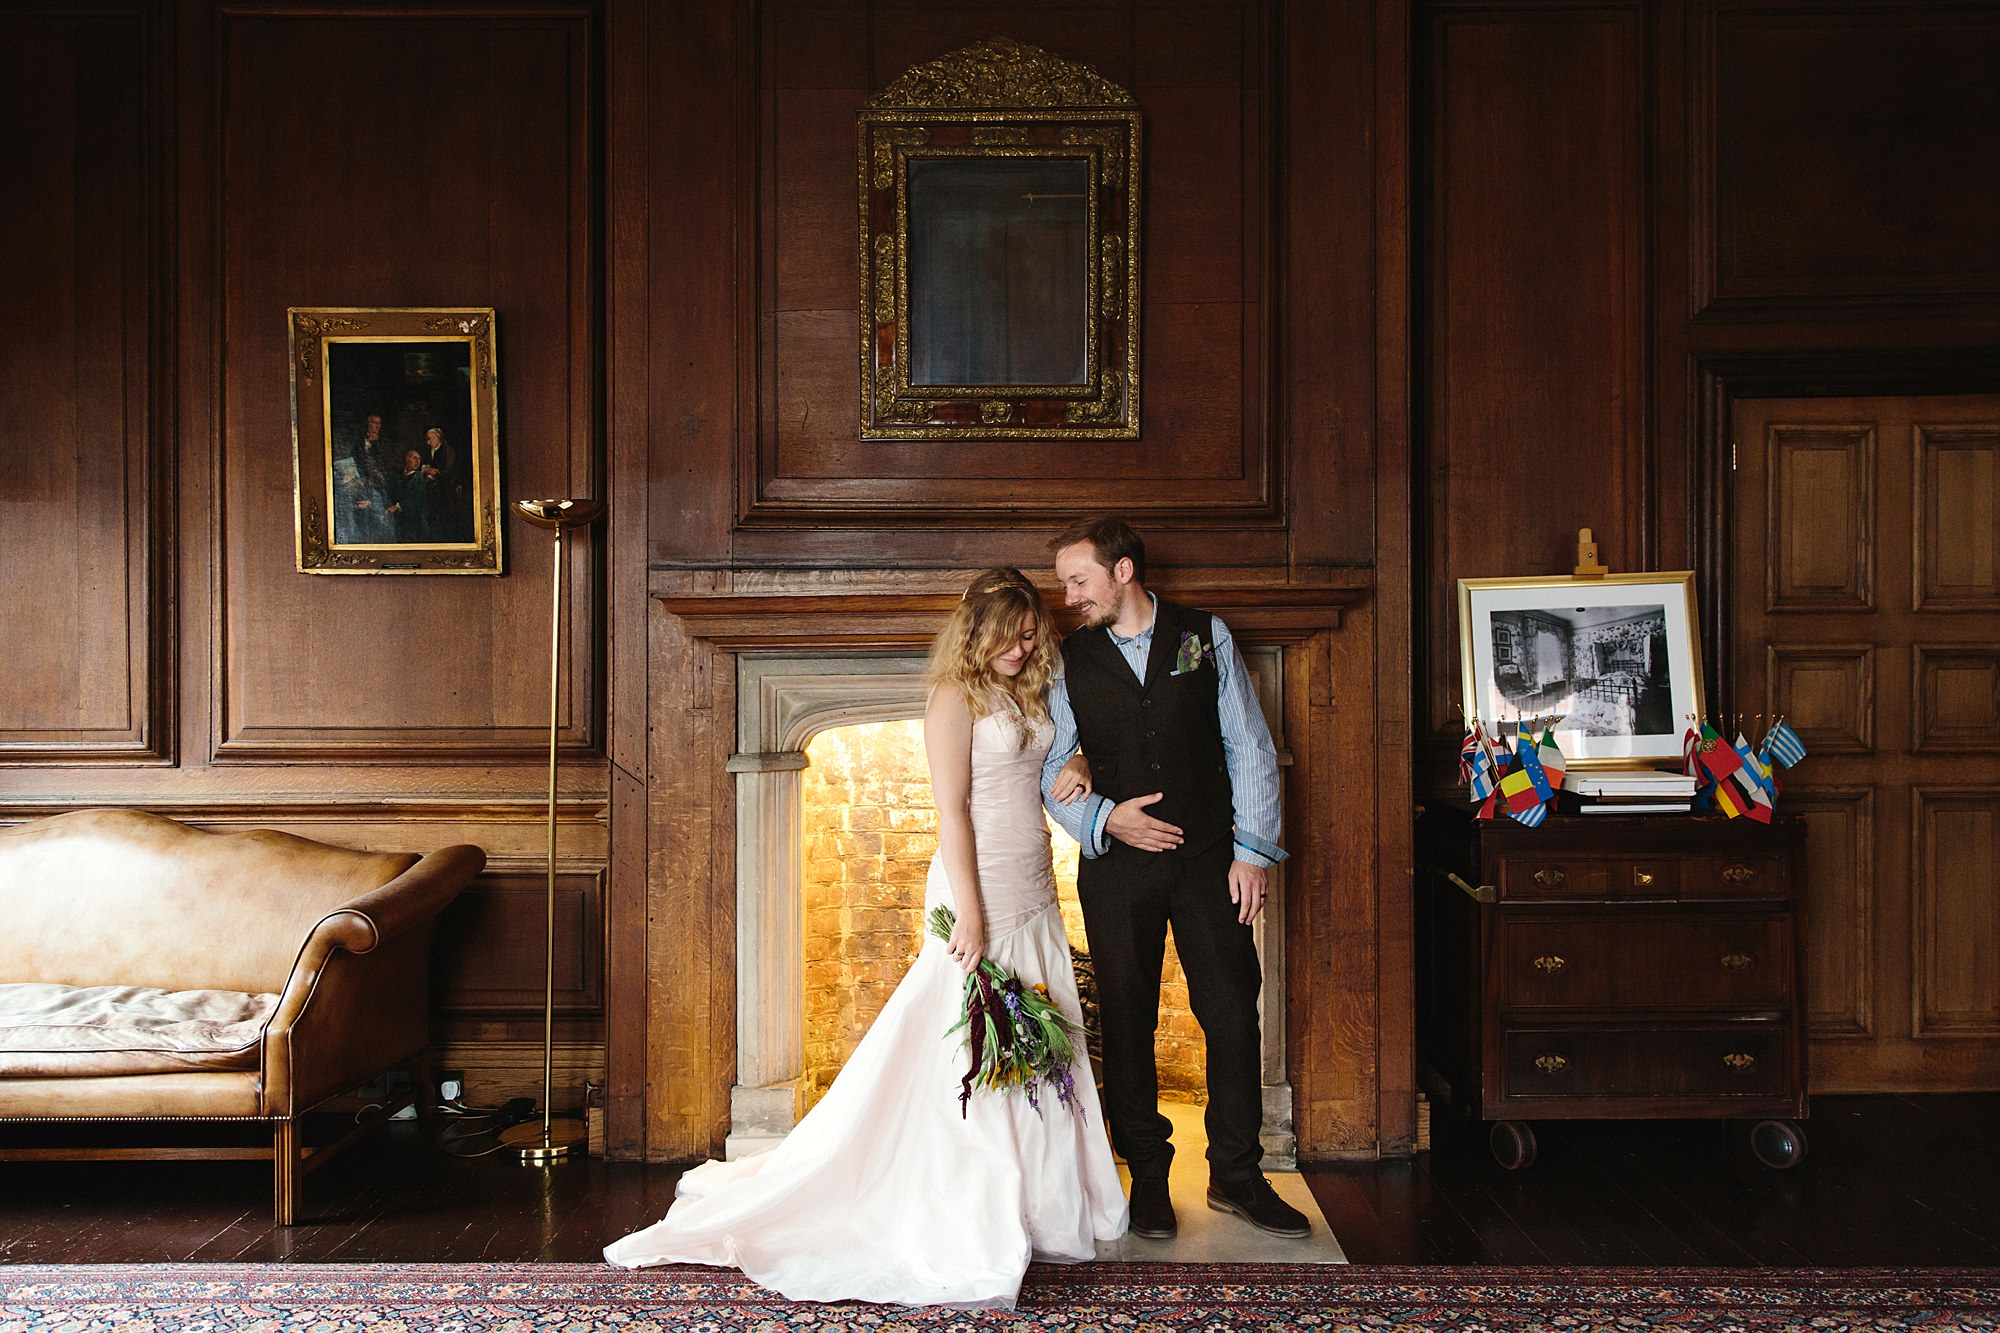 Fun village hall wedding bride and groom by fireplace at Edes House